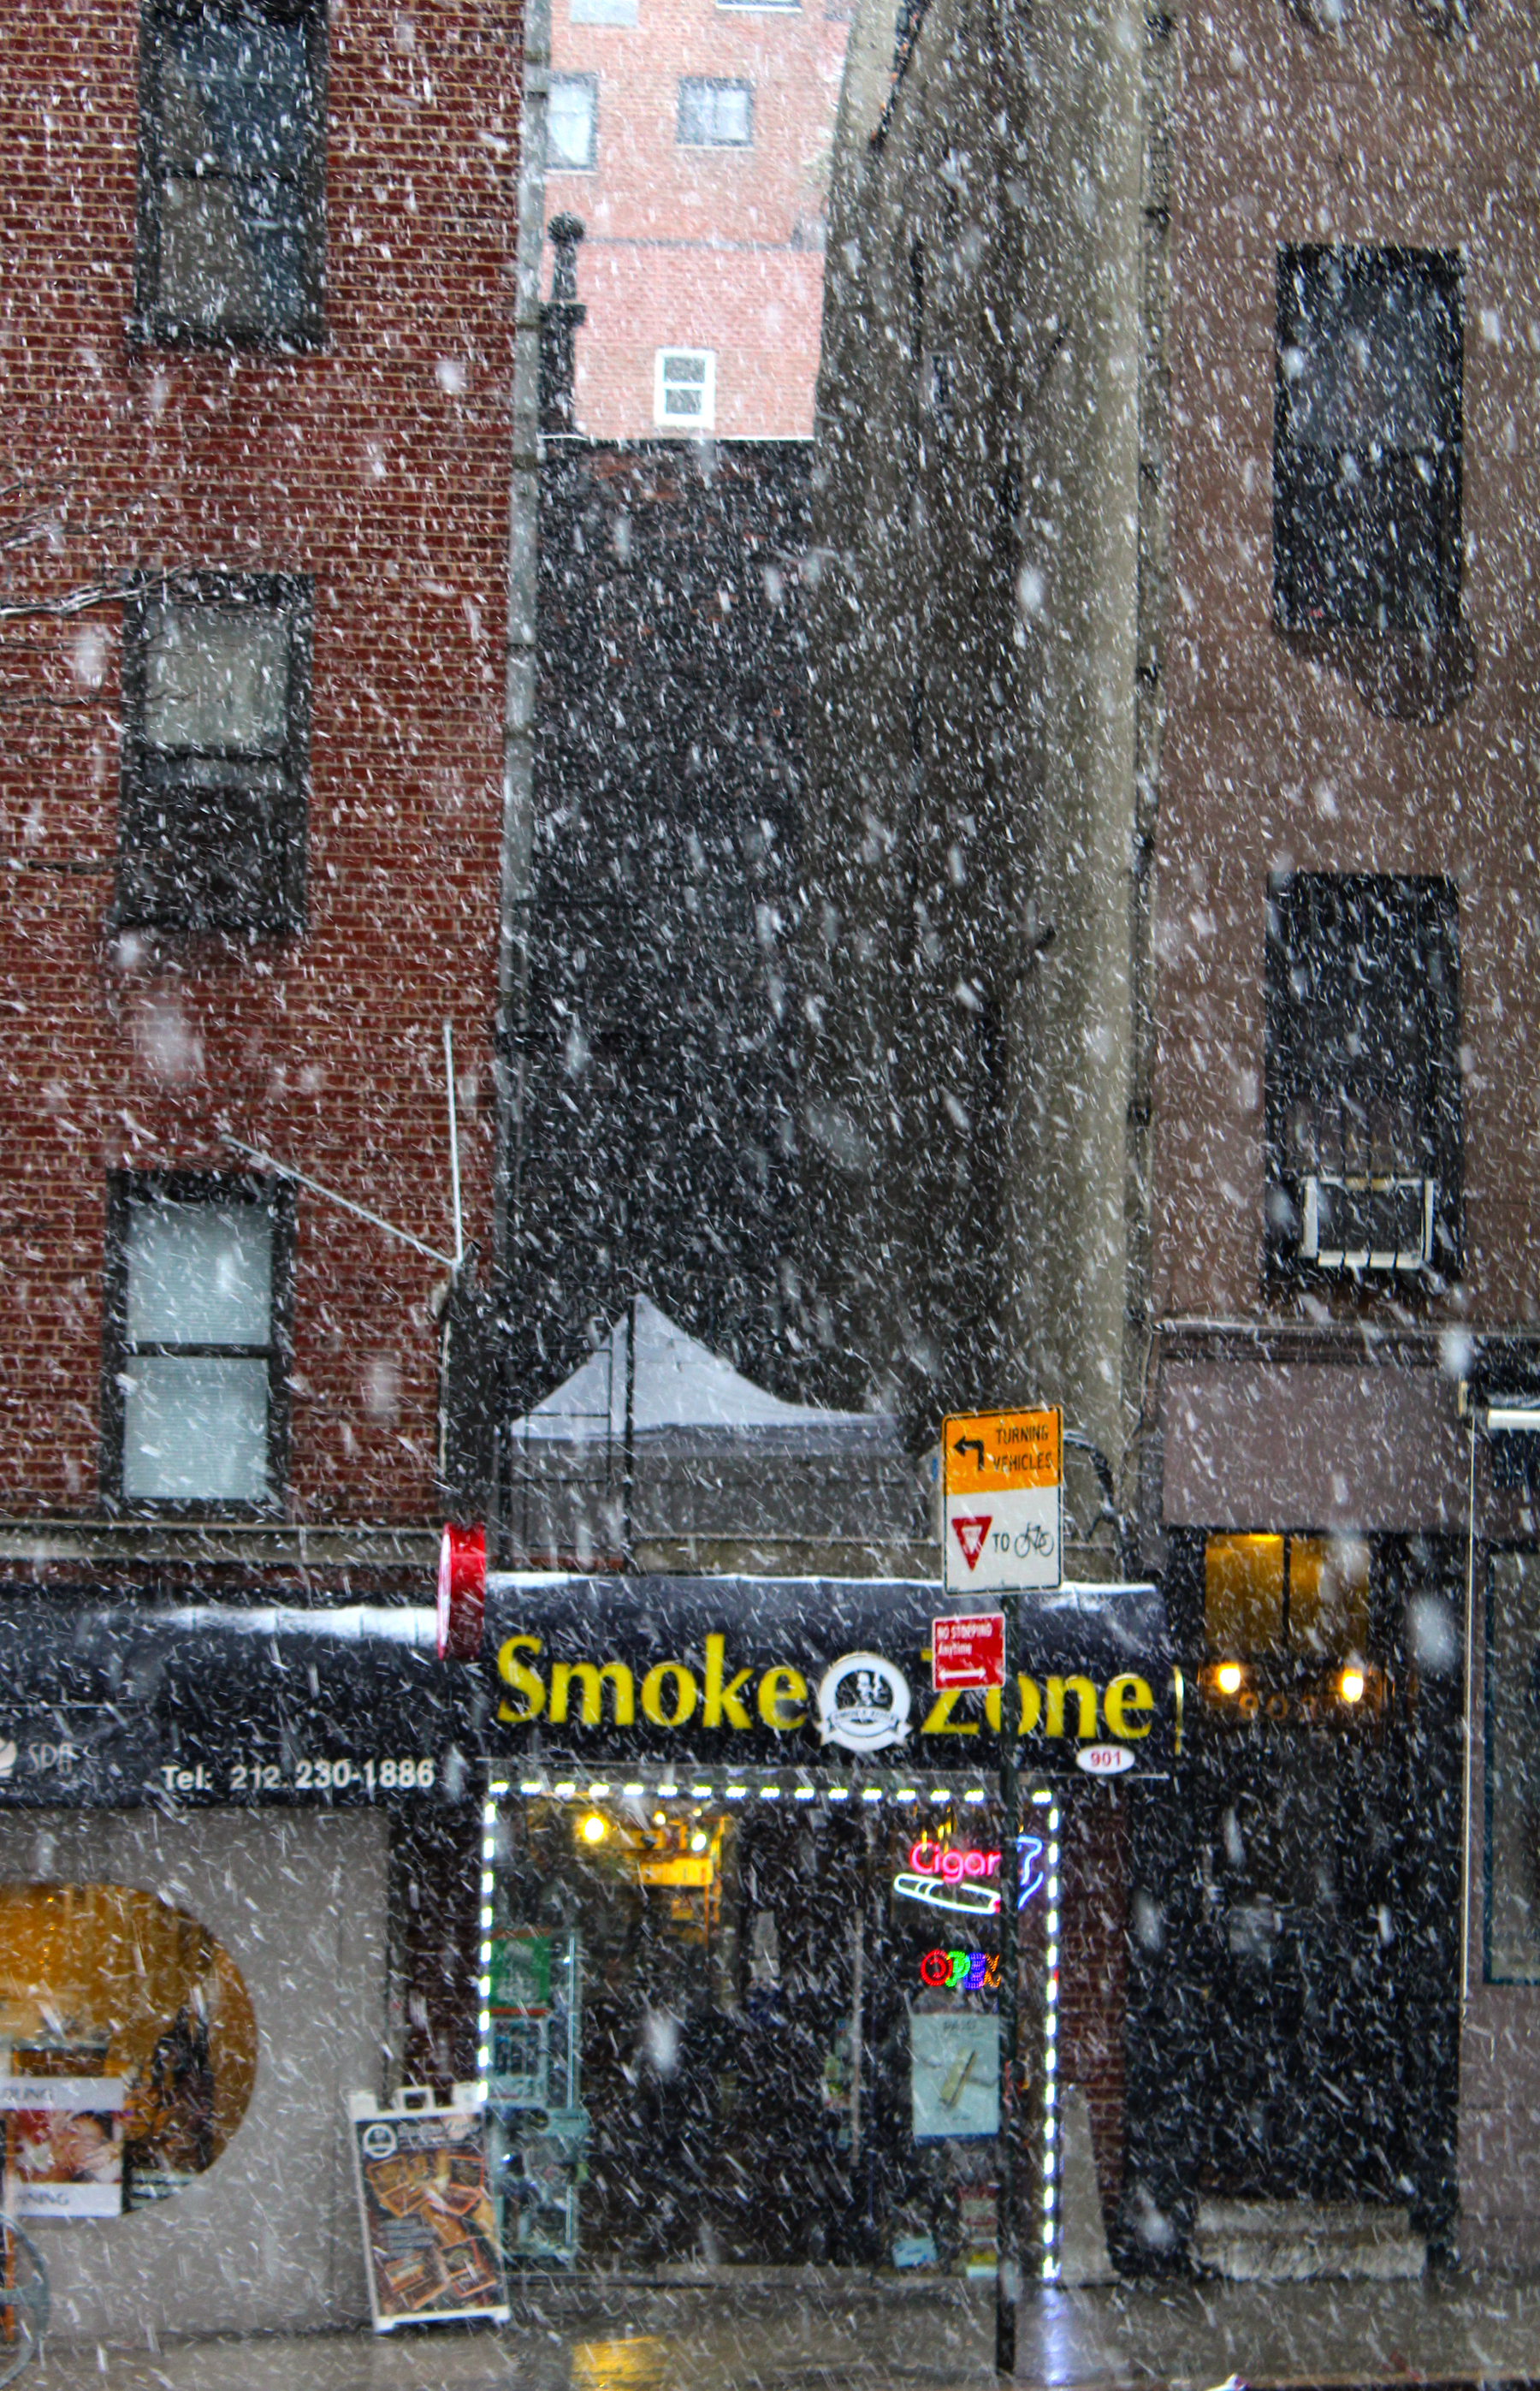 Smoke Zone is one of the between  4,000-6,000 Yemeni-owned bodegas and smoke shops  in the the city.